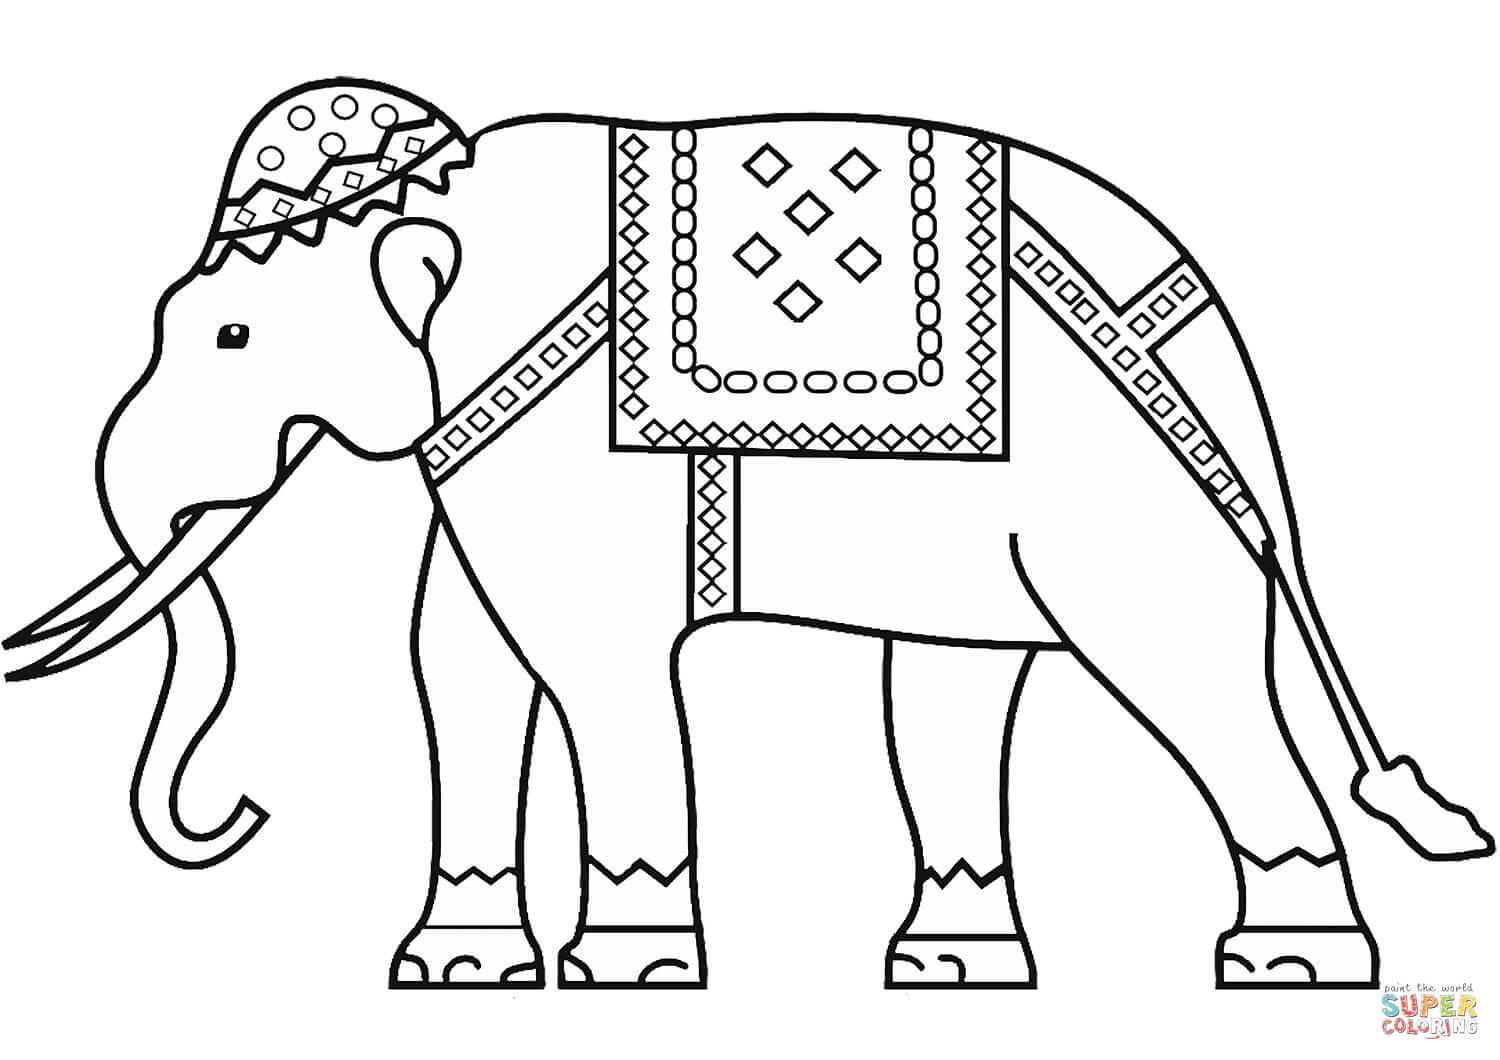 Indian Elephant Coloring Page   Free Printable Coloring Pages - Printable Elephant Puzzle